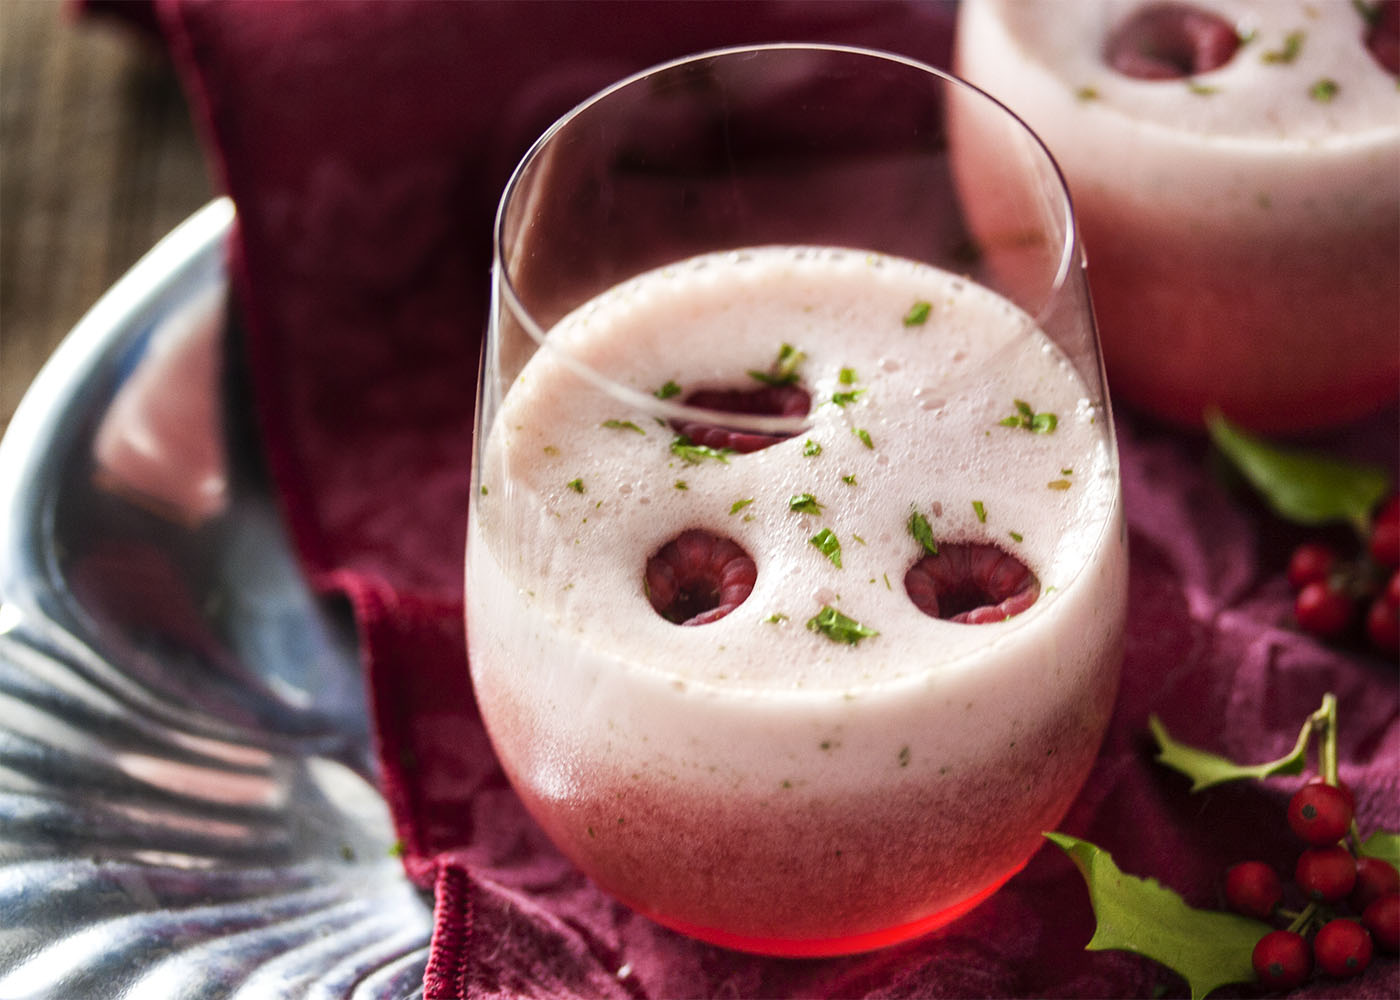 Raspberry Mint Prosecco Cocktail - Holiday entertaining is the time to bring out the bubbly and this prosecco sorbet cocktail is just the thing for a celebration. 5 minutes and 4 ingredients is all you need.   justalittlebitofbacon.com